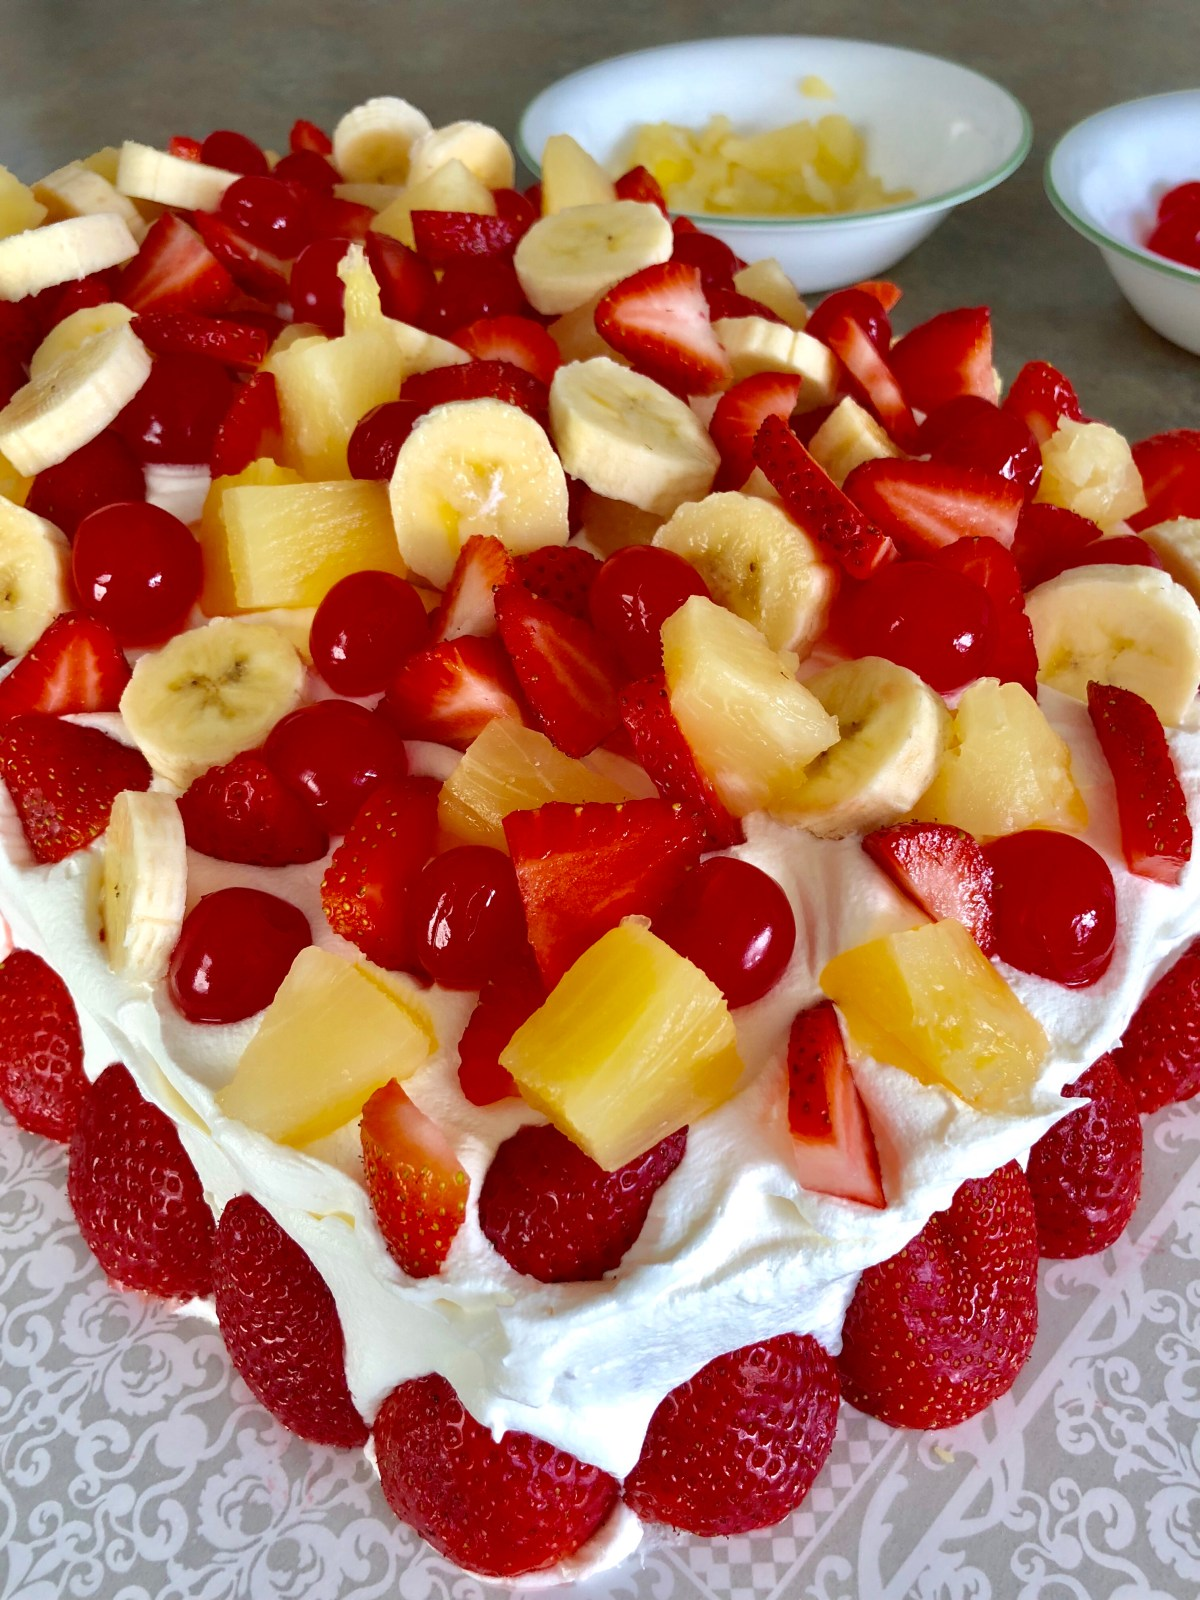 Keep adding fruit until the cake is completely covered.